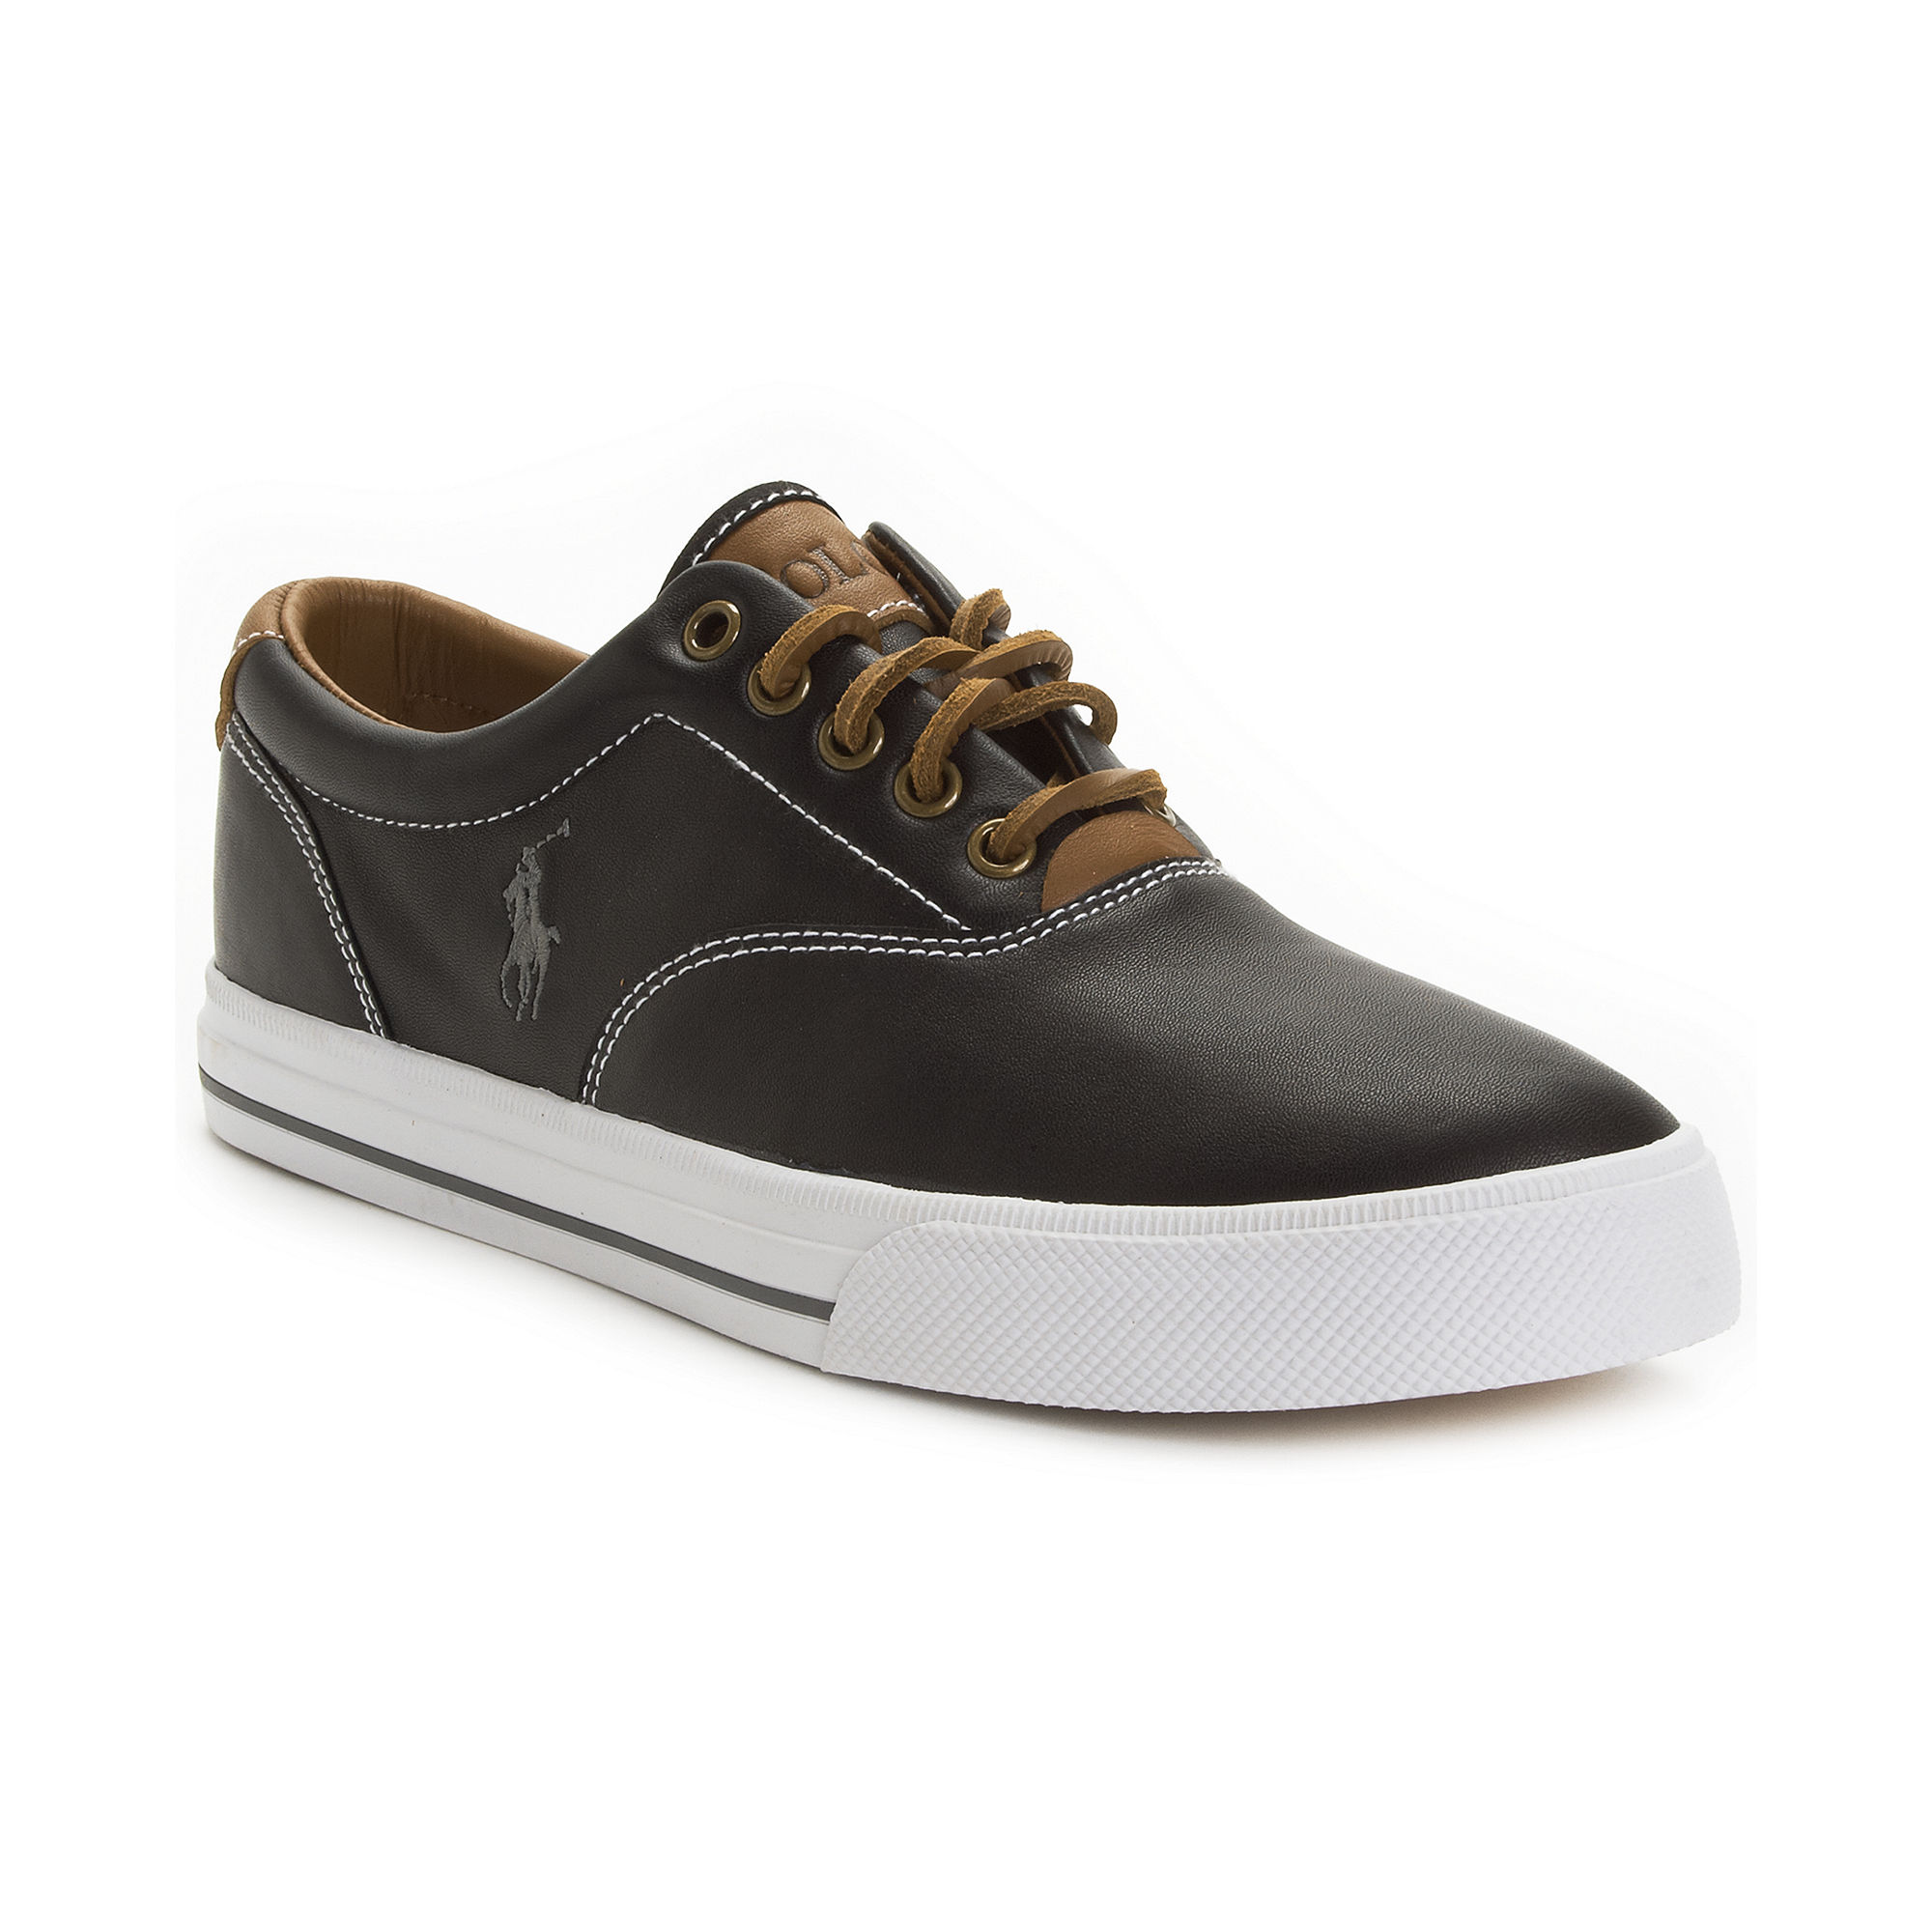 polo ralph lauren vaughn leather sneakers in gray for men grey lyst. Black Bedroom Furniture Sets. Home Design Ideas